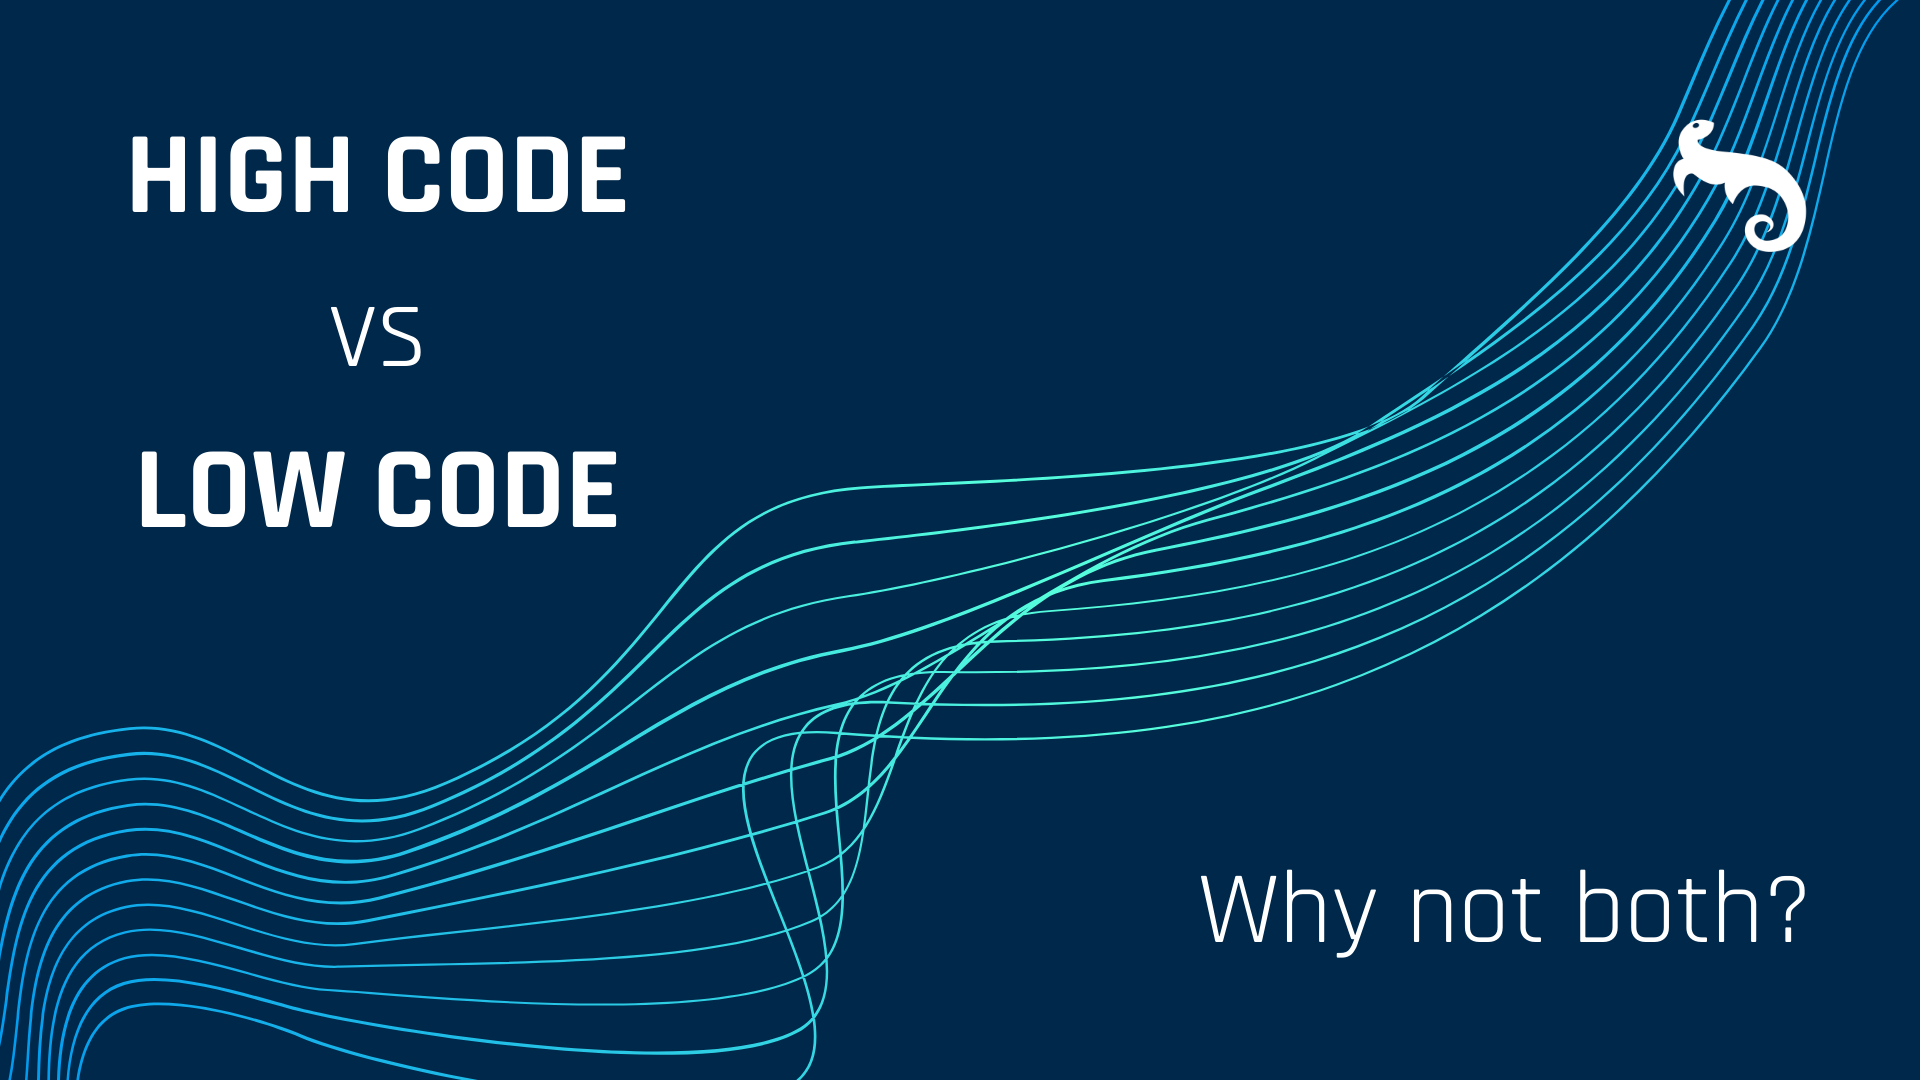 Low code vs High Code: Why not both?